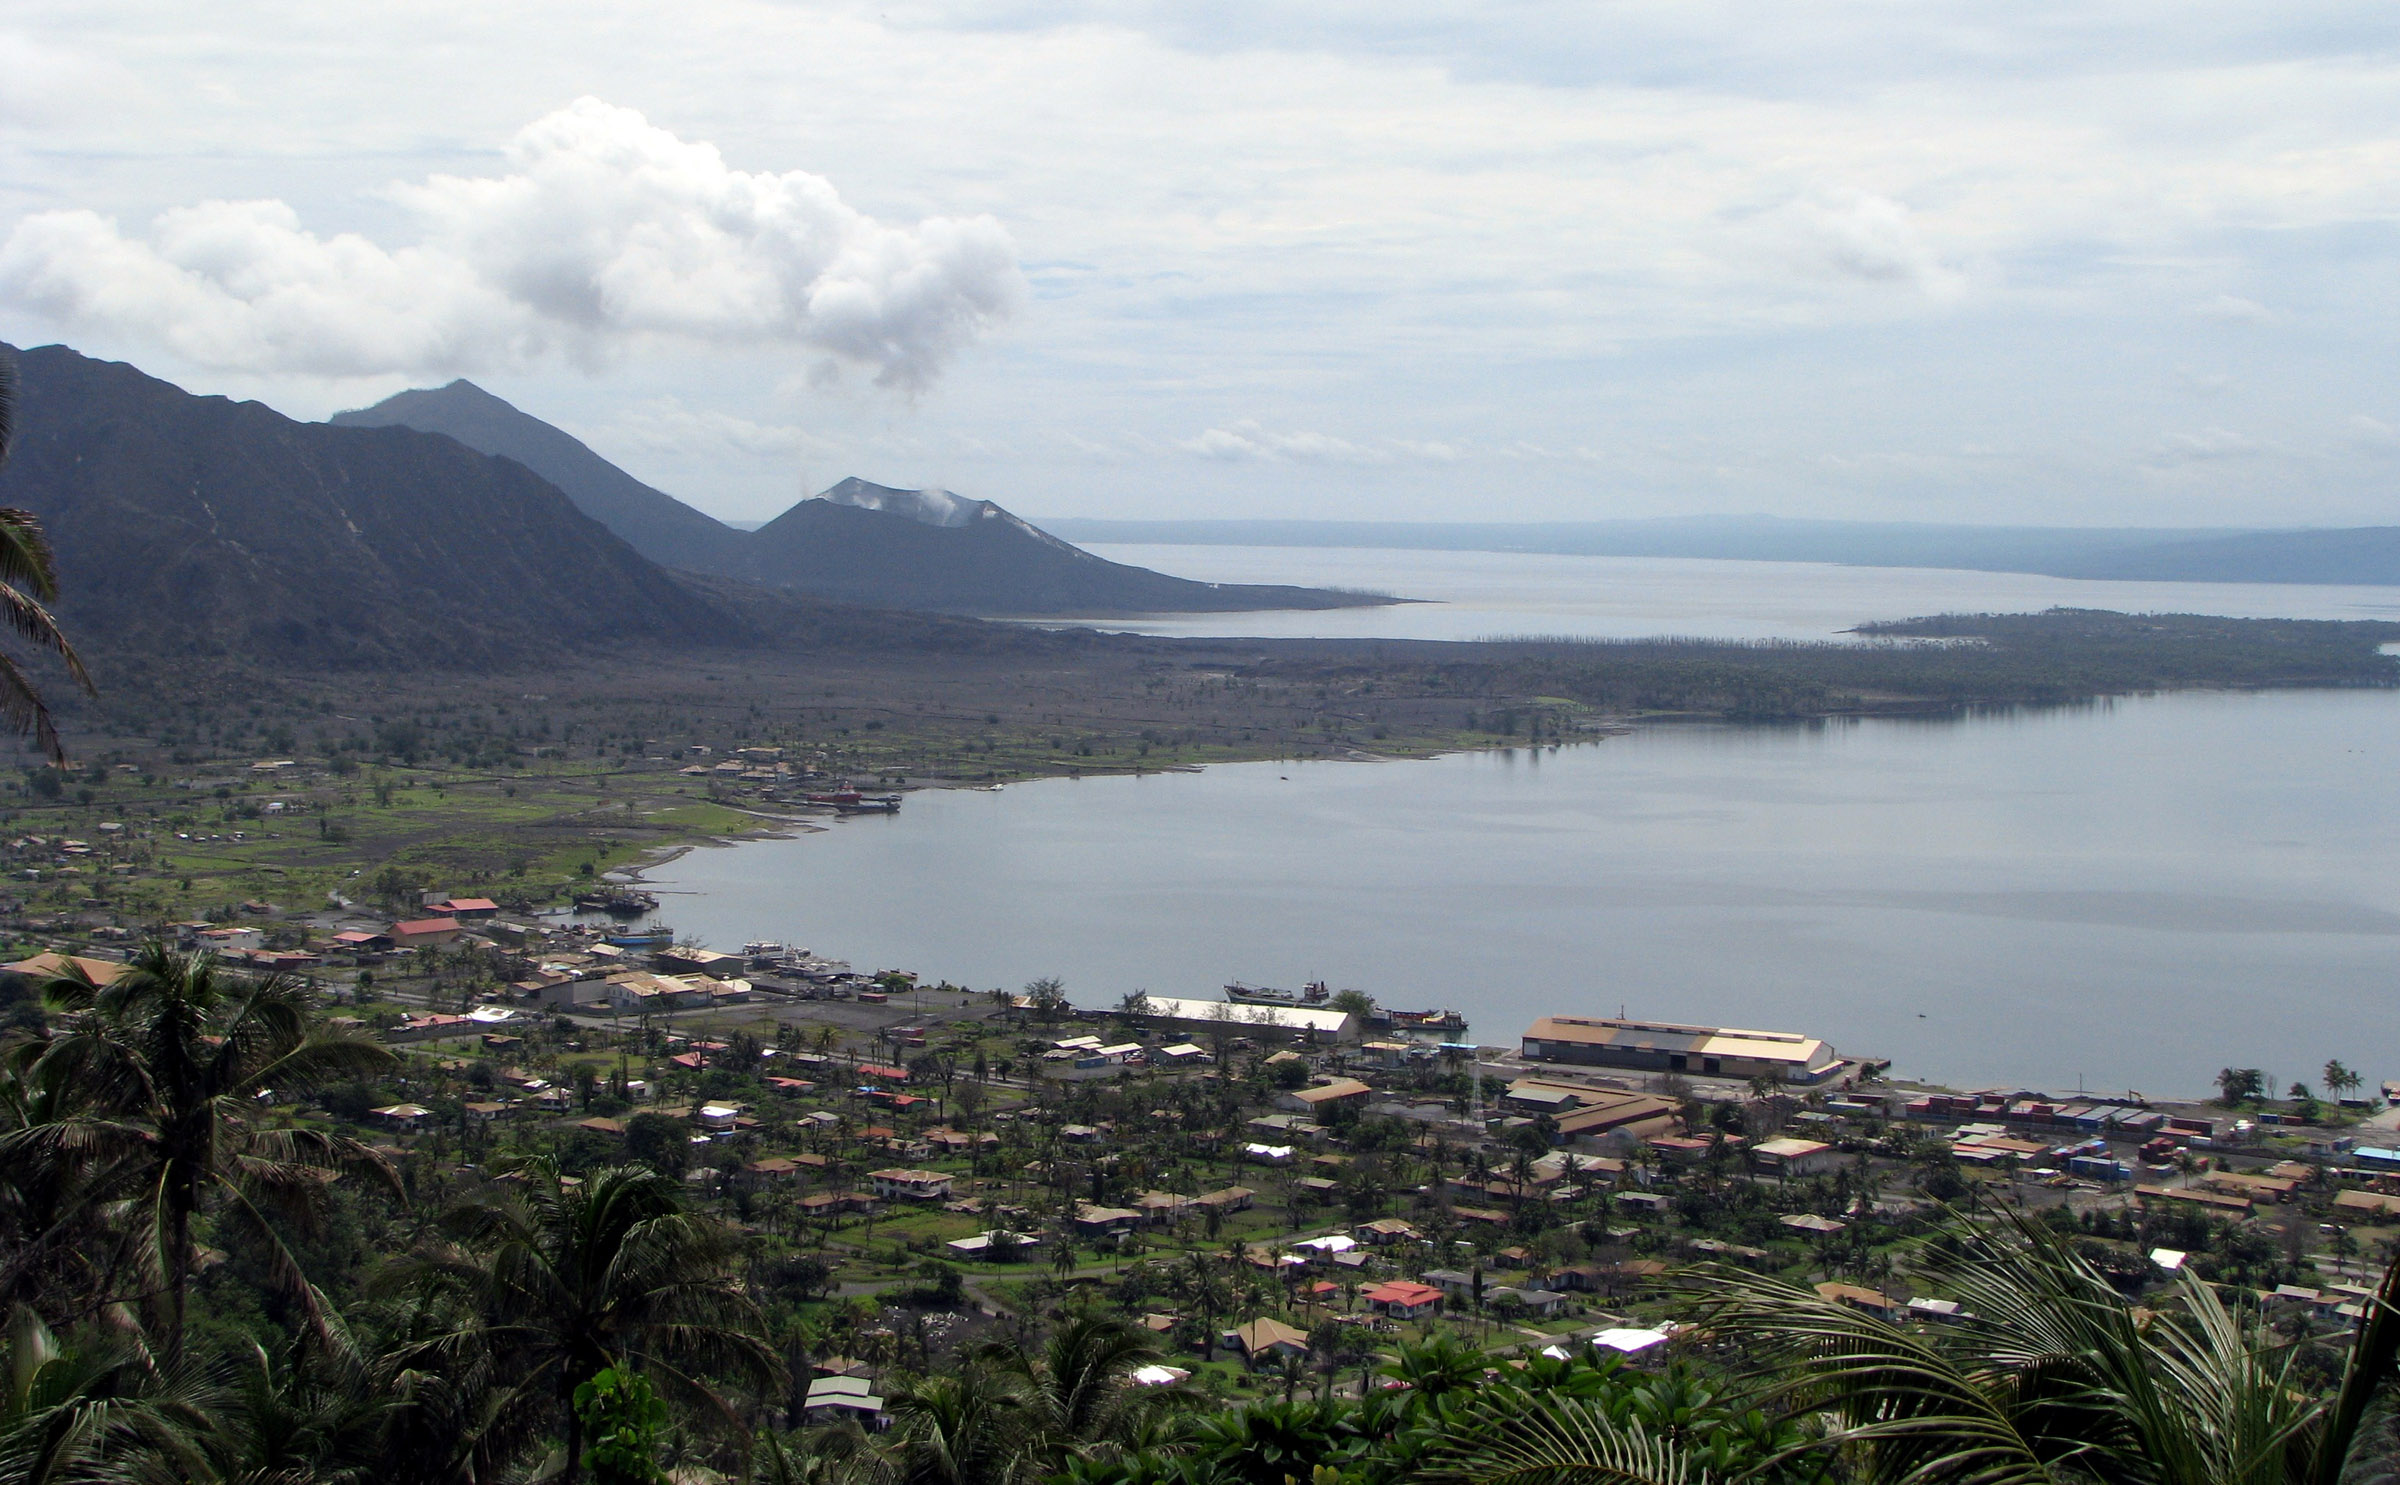 Rabaul Harbor, Papua New Guinea - by Kahunapule Michael Johnson